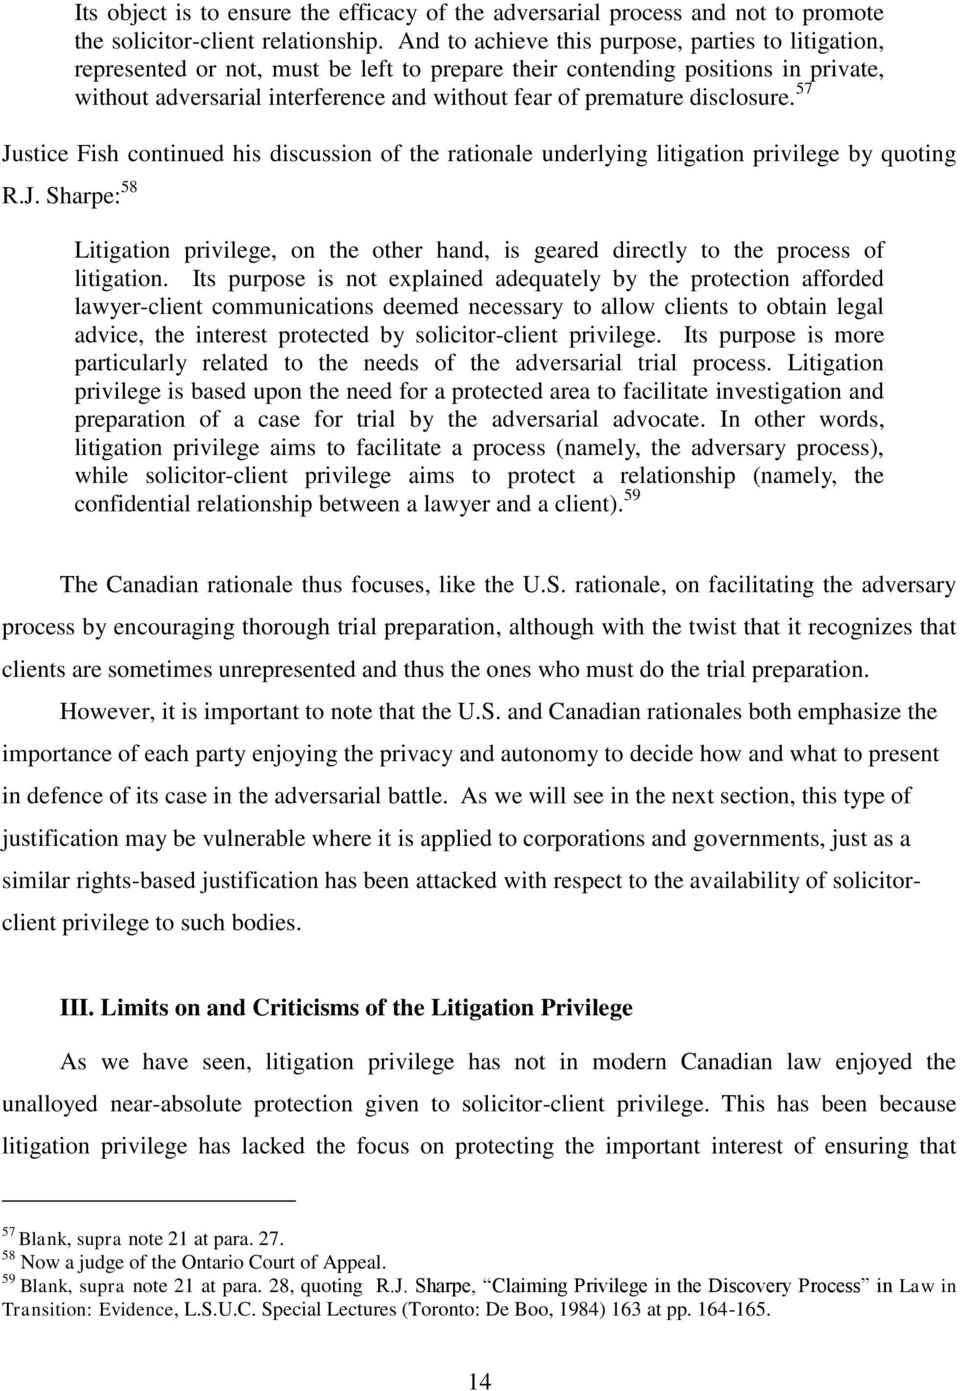 disclosure. 57 Justice Fish continued his discussion of the rationale underlying litigation privilege by quoting R.J. Sharpe: 58 Litigation privilege, on the other hand, is geared directly to the process of litigation.